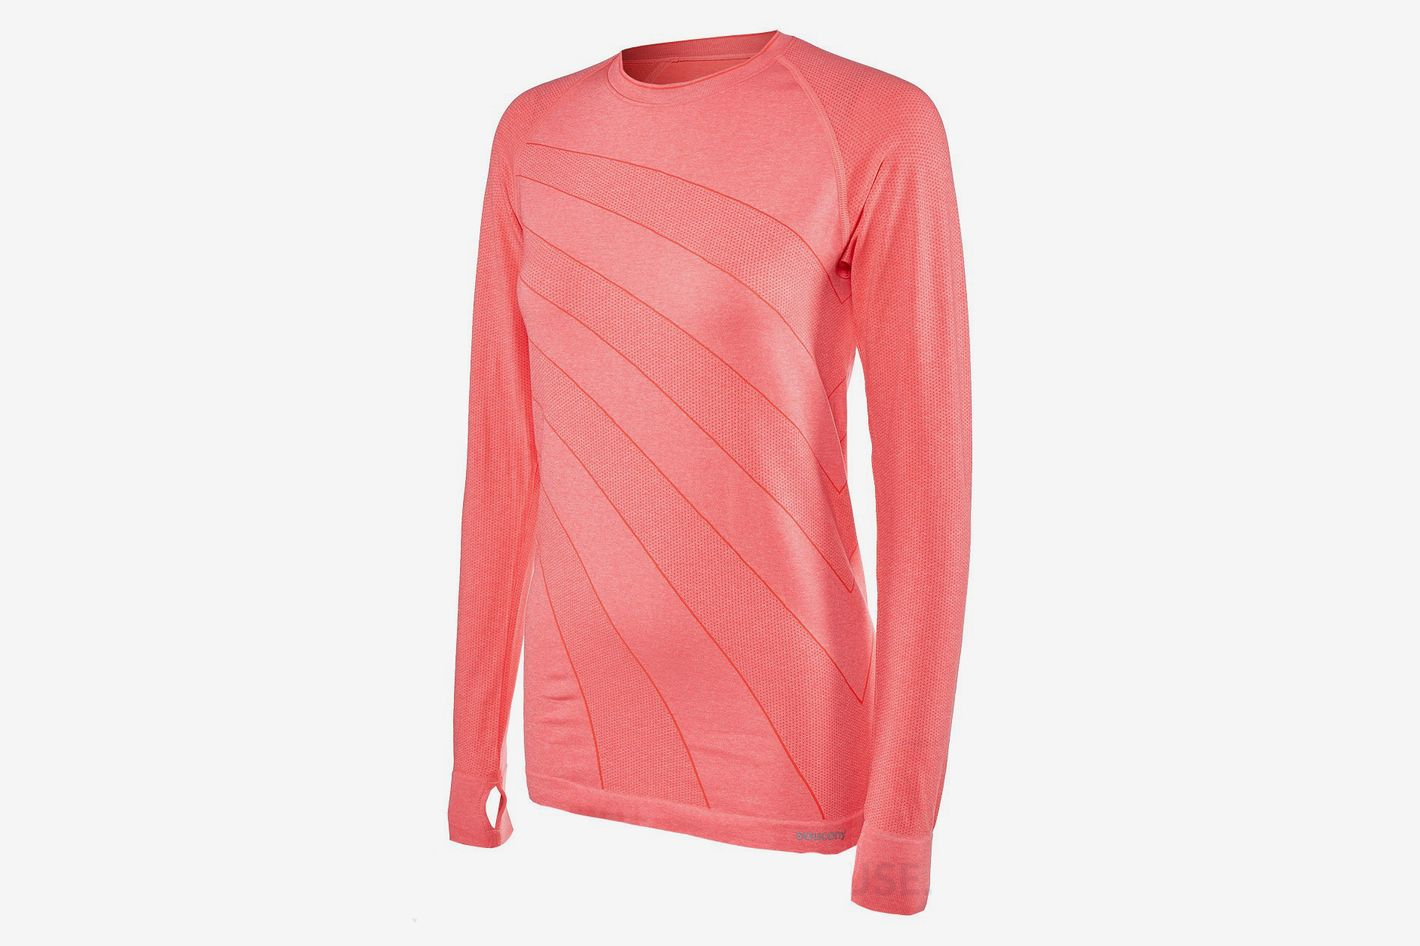 Saucony Women's Dash Seamless Long Sleeve